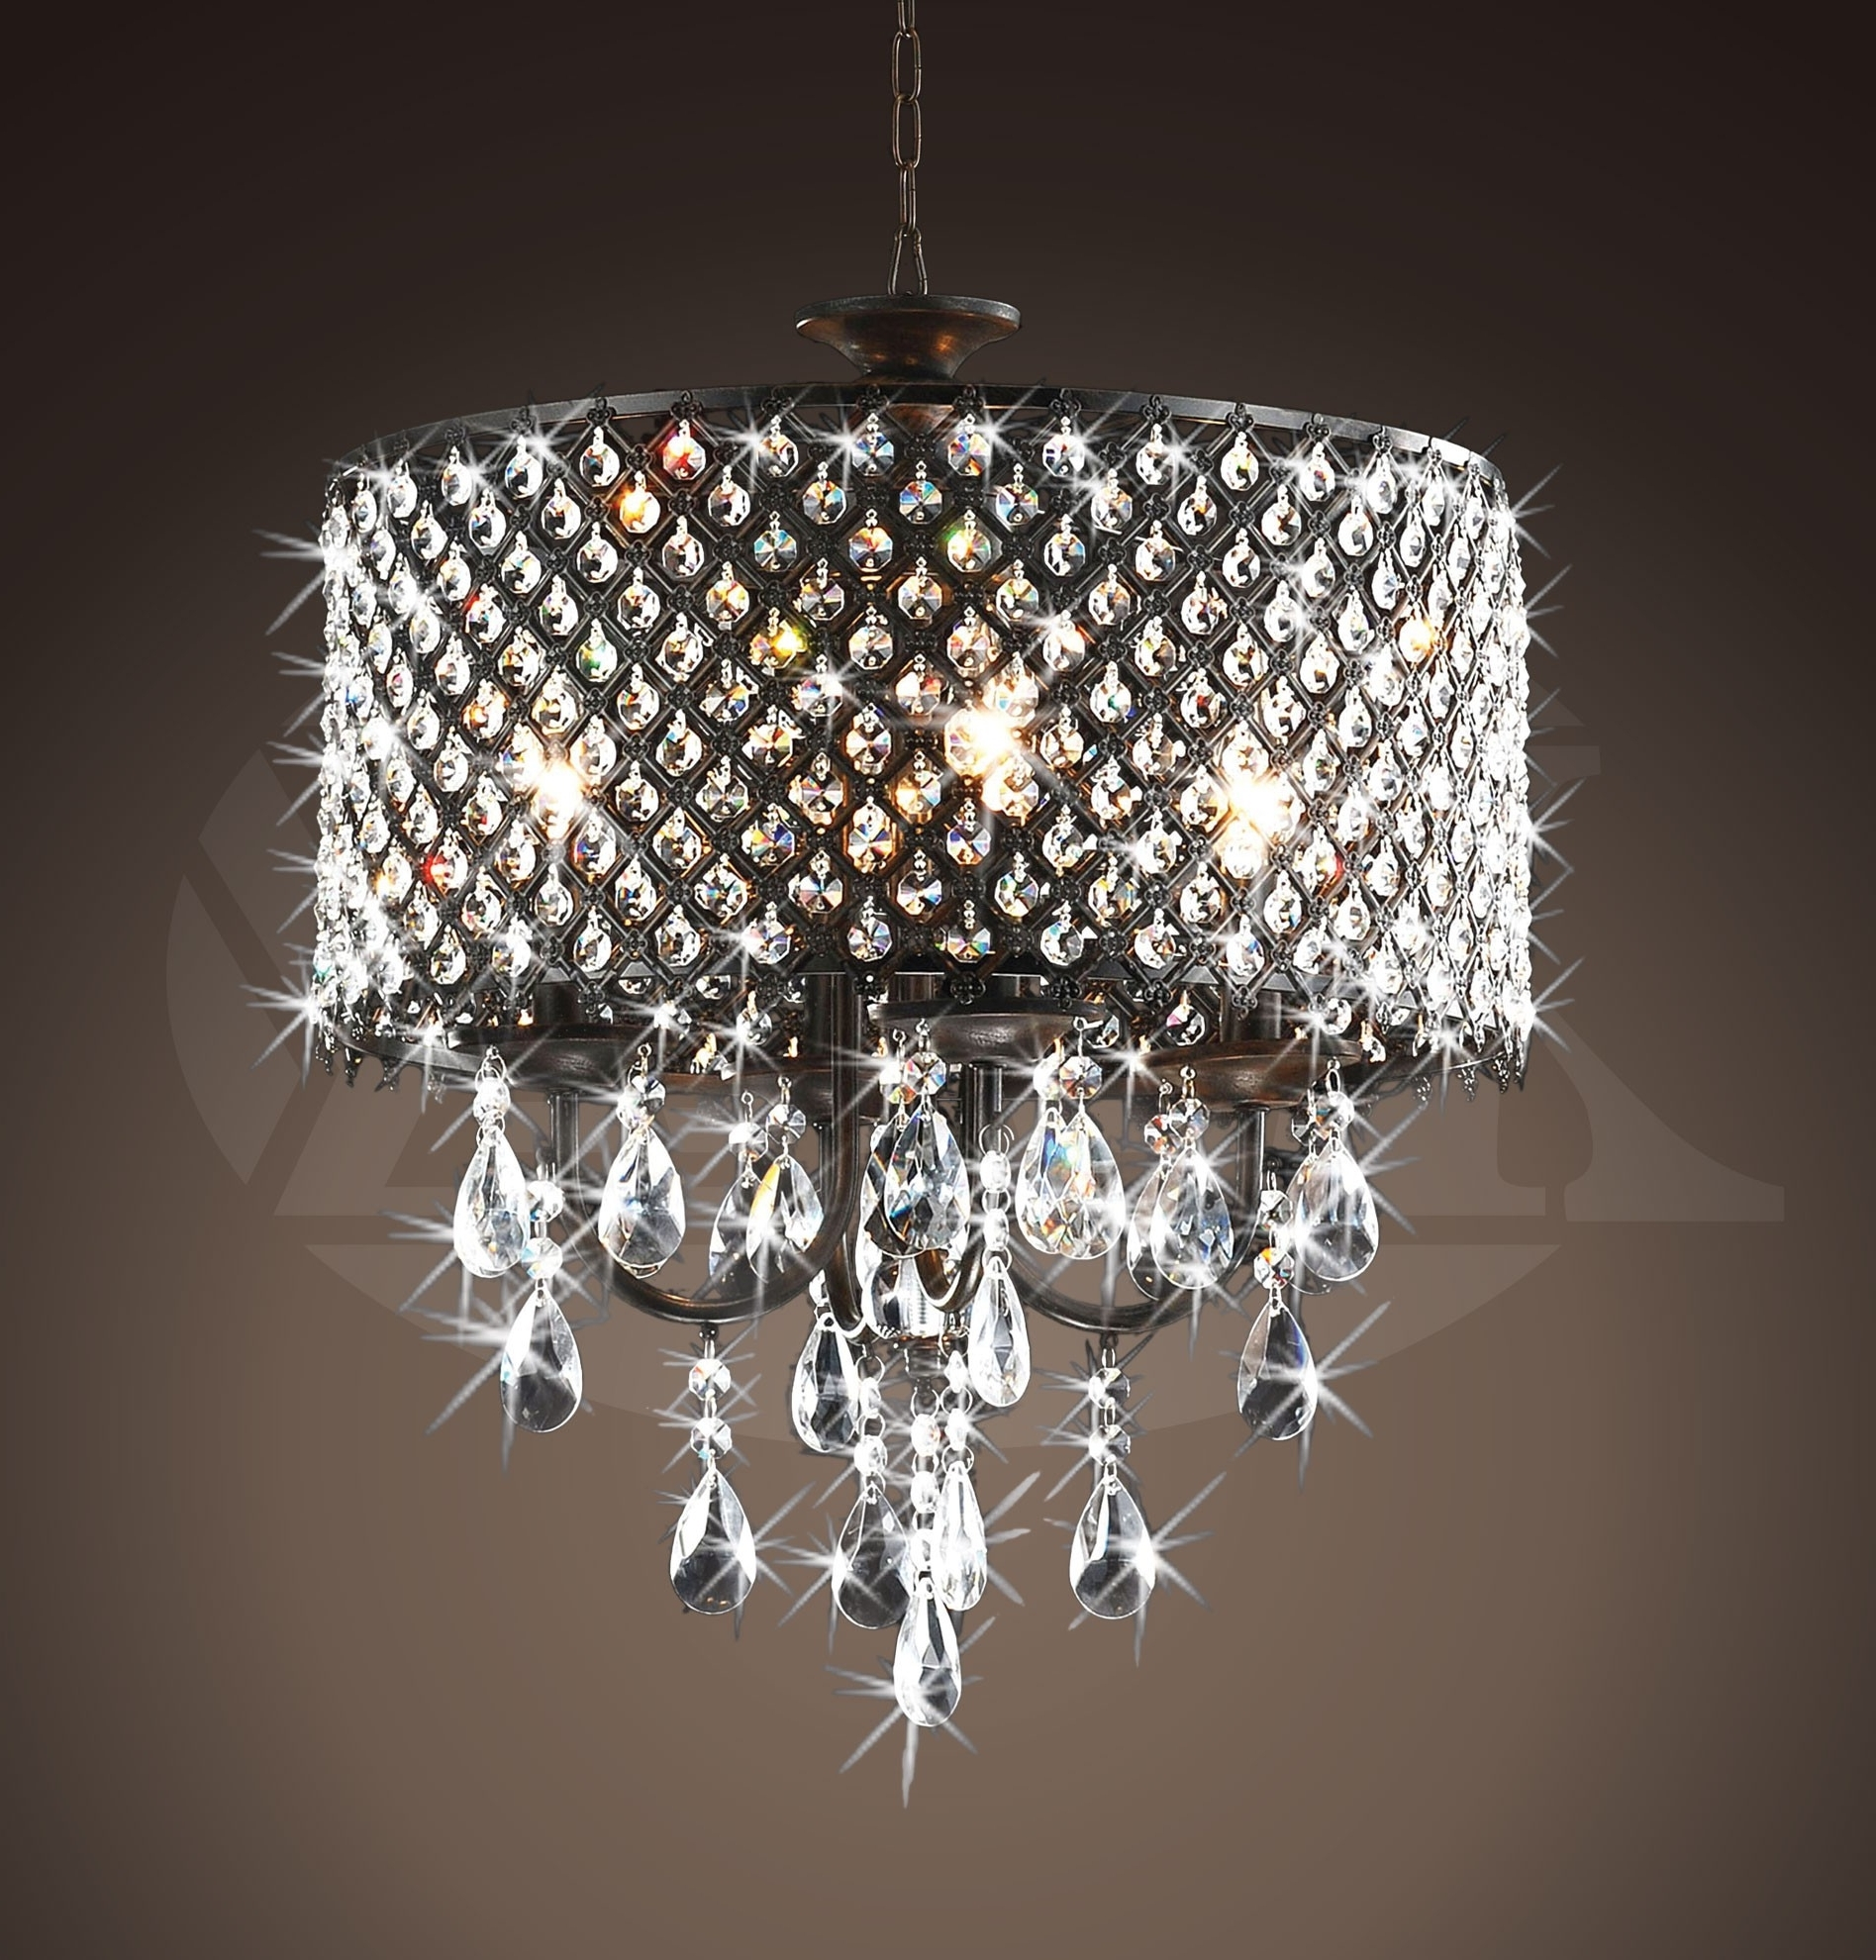 Bronze And Crystal Chandeliers With Most Up To Date Rachelle 4 Light Round Antique Bronze Brass Crystal Chandelier (View 5 of 20)